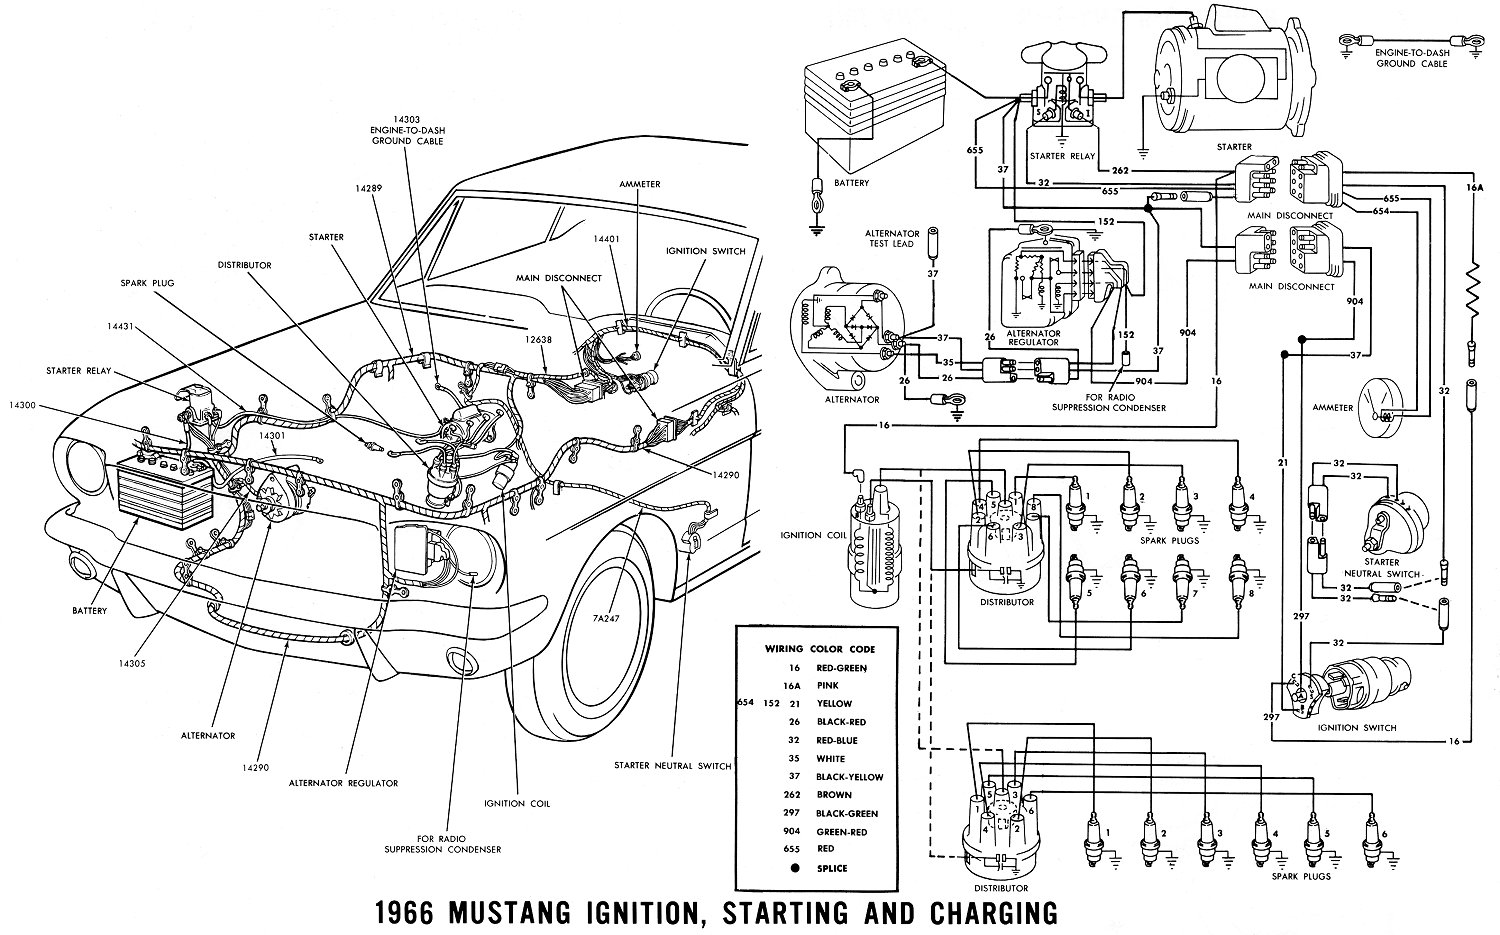 66ignit wiring diagram 69 mustang ignition switch readingrat net wiring diagram for 69 mustang at gsmportal.co